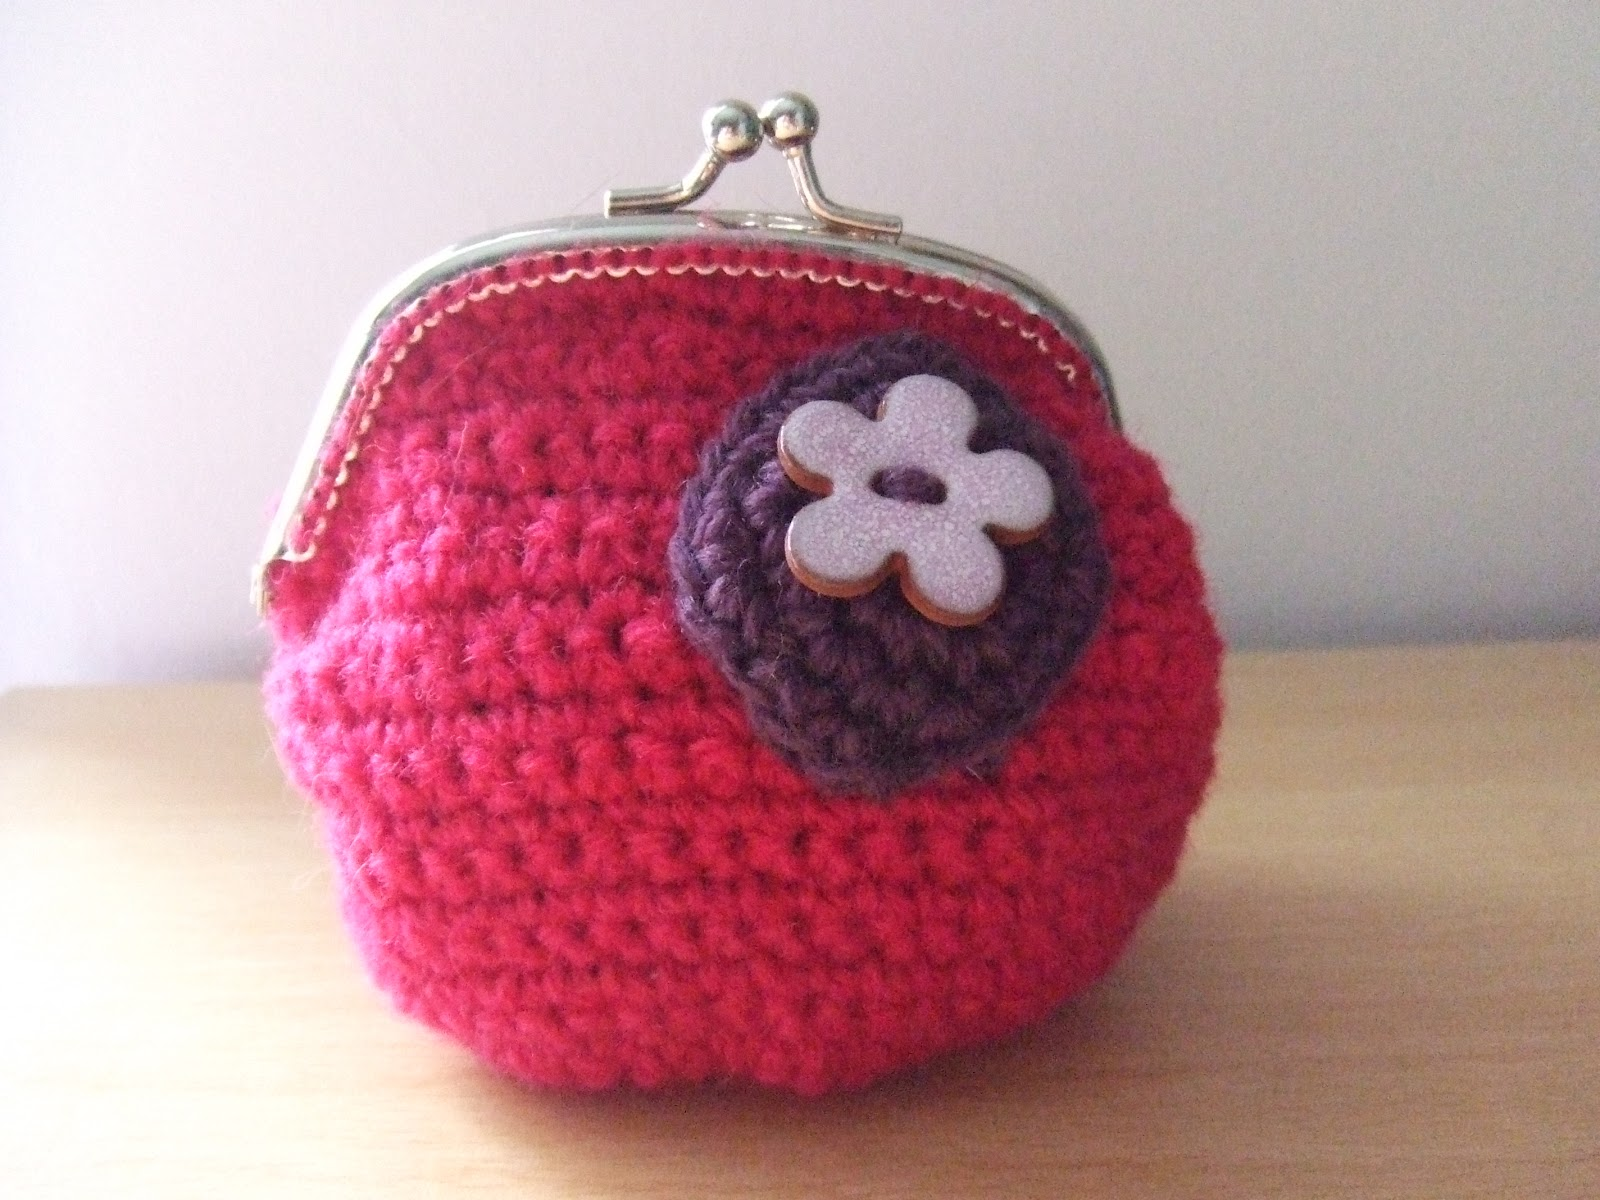 Crochet Purses And Bags : who needs glue i love framed purses and bags and i would really like ...